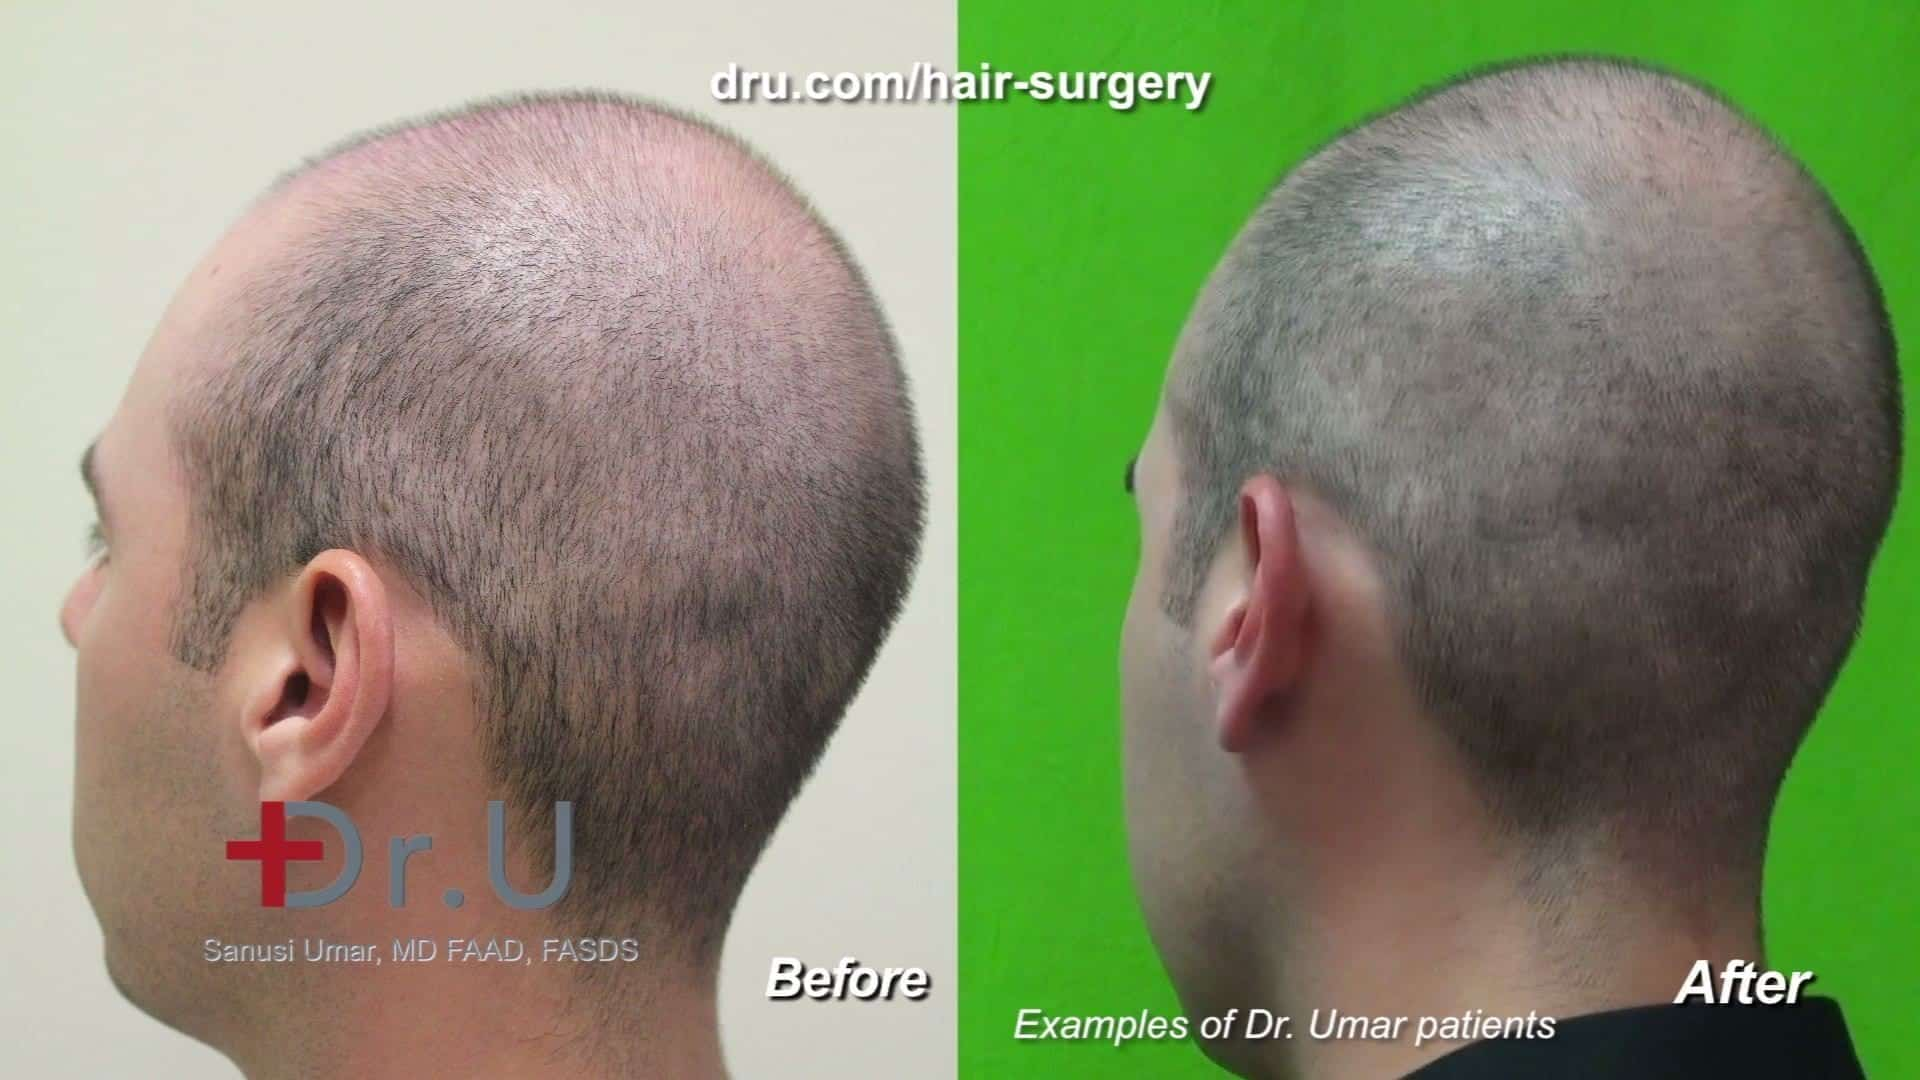 pimples after a hair transplant - Q&A Discussion